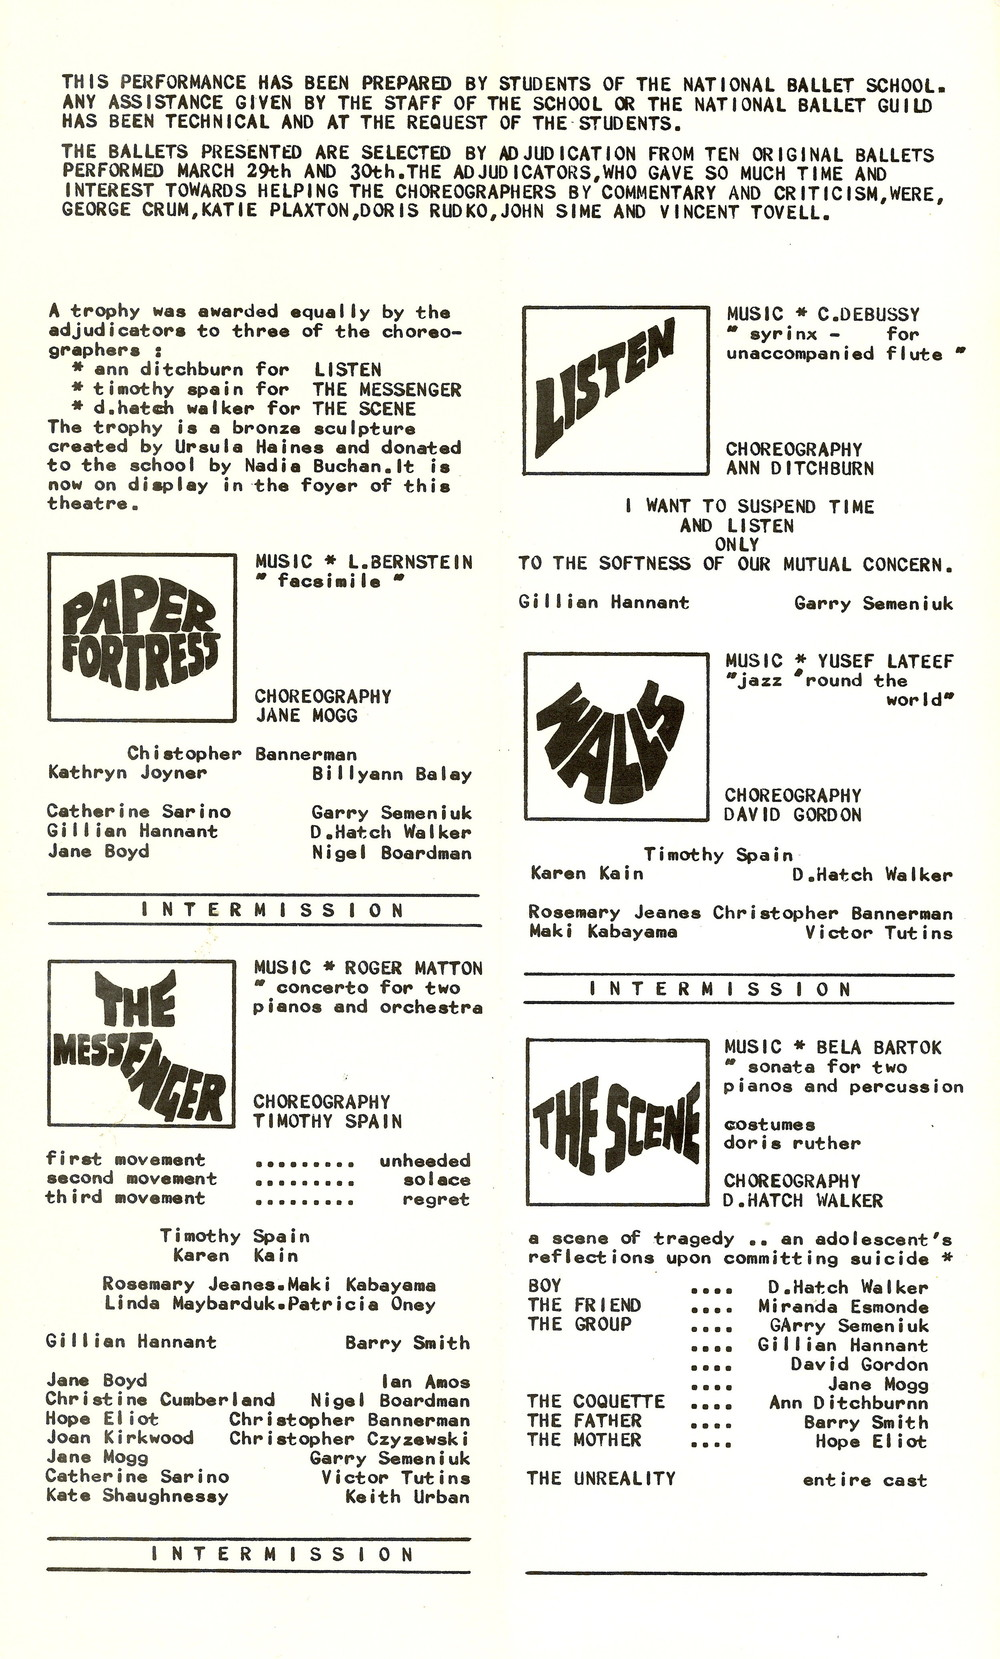 Program from the first NBS Choreographic Workshop, May 22, 1968. Student choreographers included Timothy Spain, Ann Ditchburn, Jane Mogg, David Gordon, and David Hatch Walker.